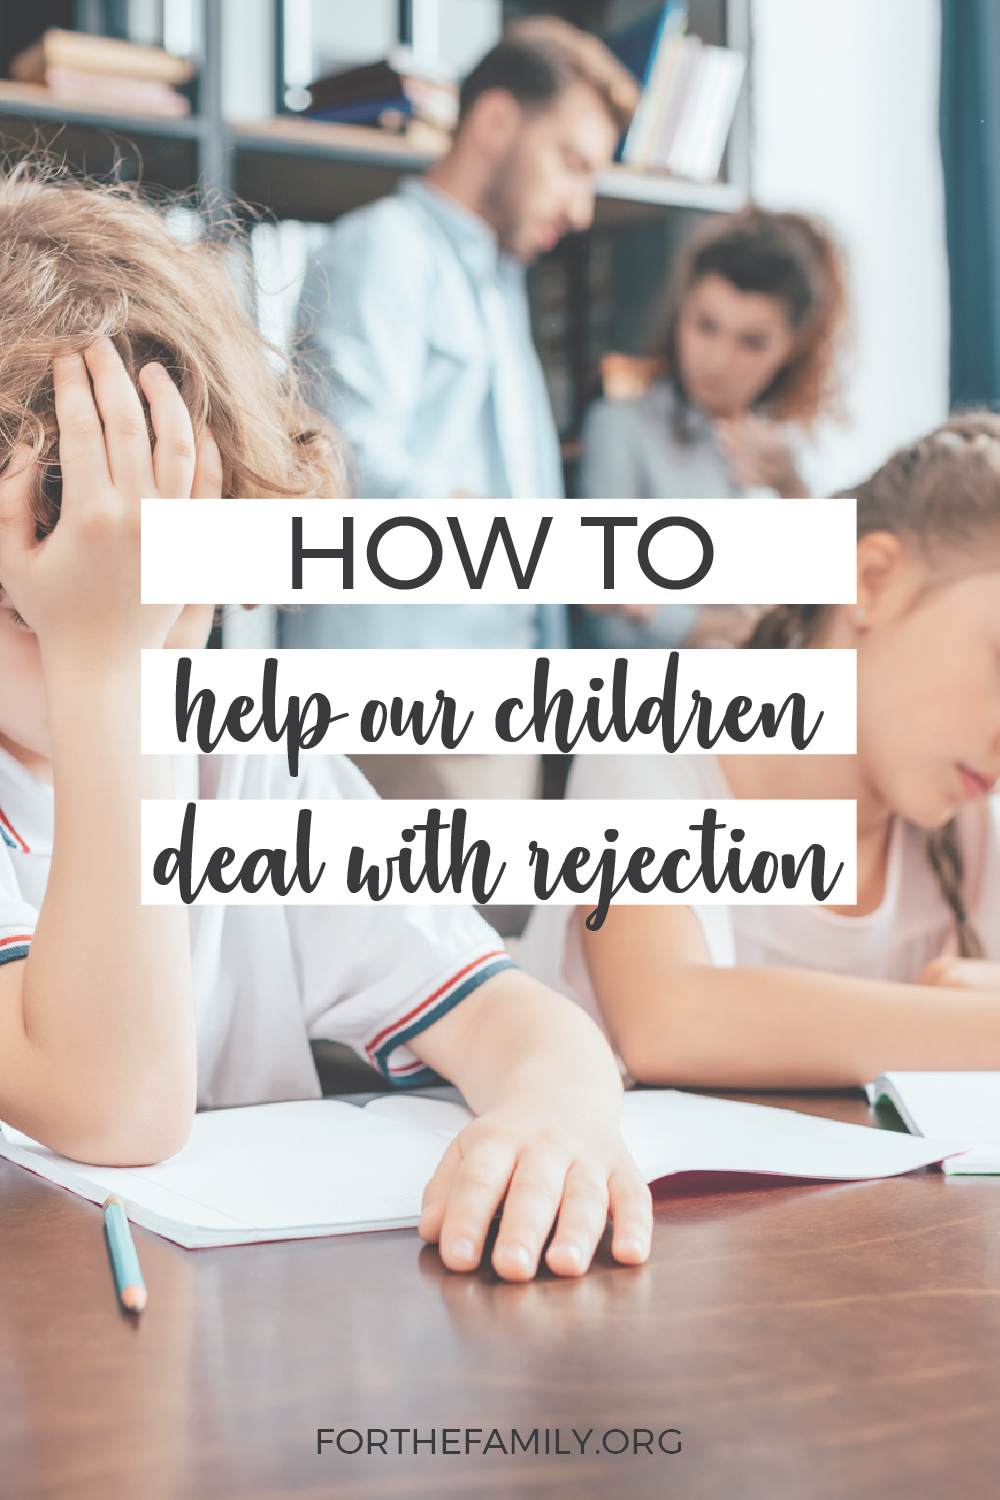 How To Help Our Children Deal With Rejection